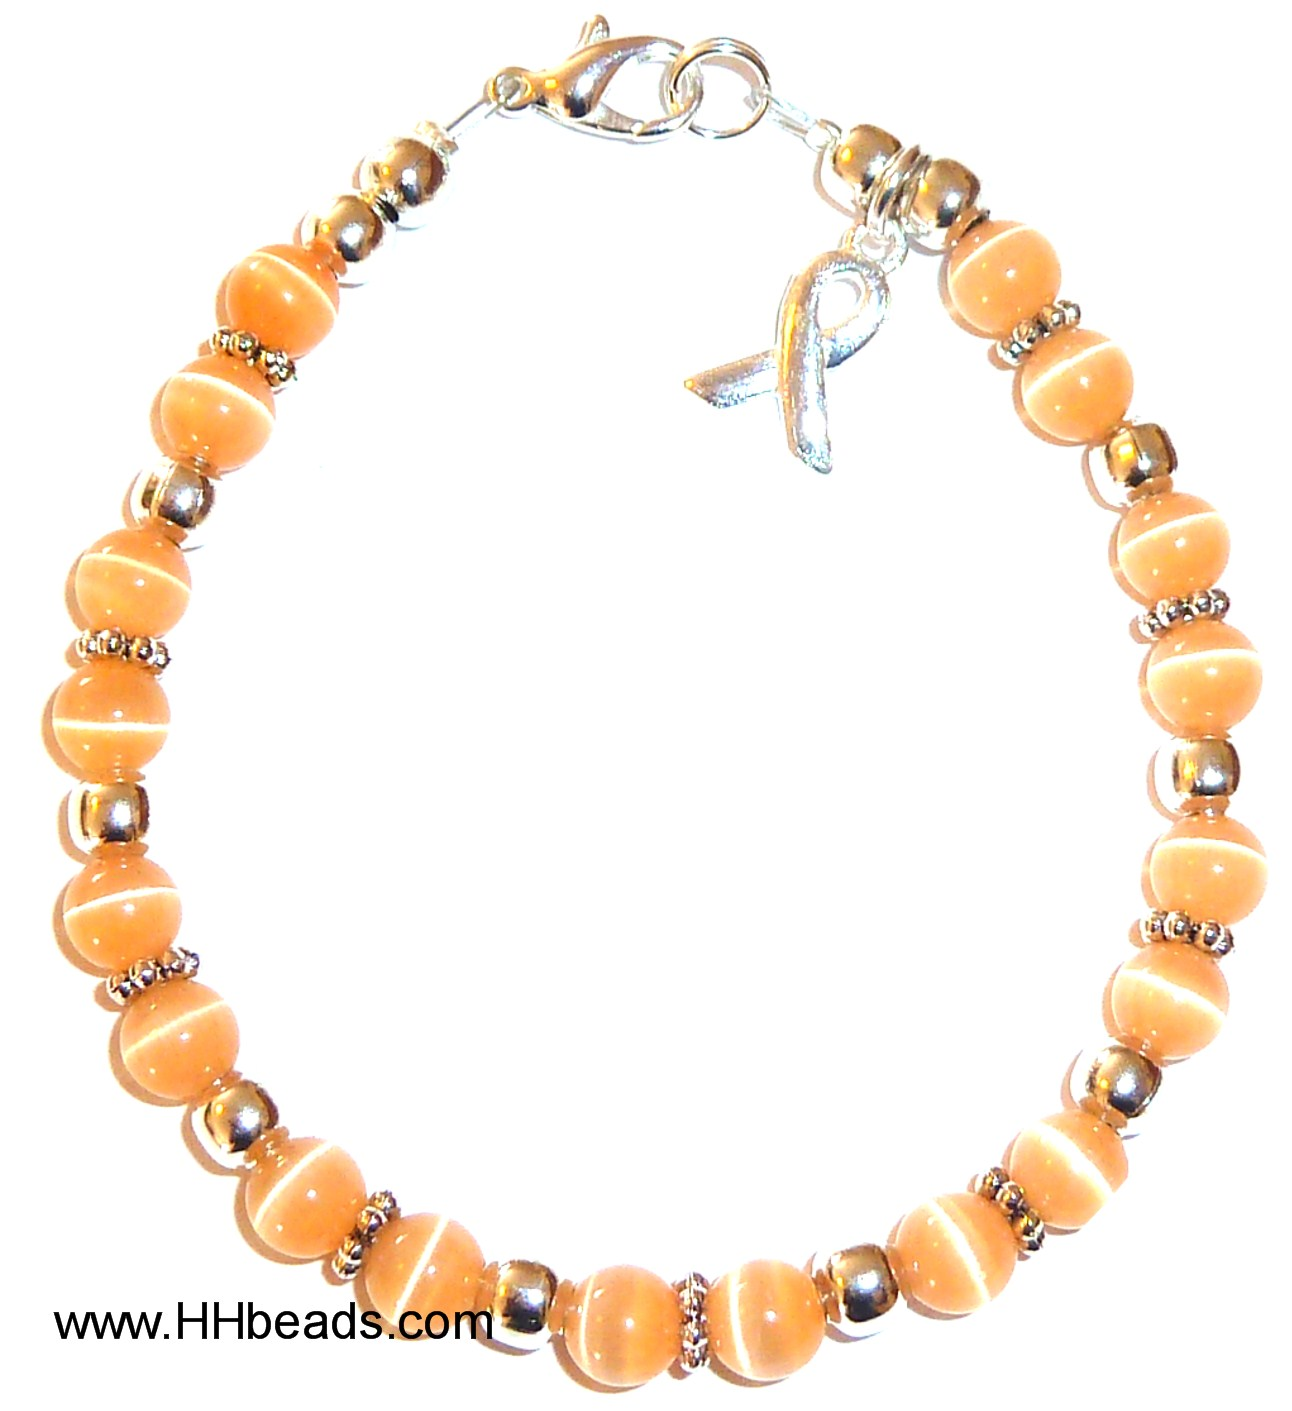 Peach Uterine Cancer Packaged Awareness Bracelet 6mm